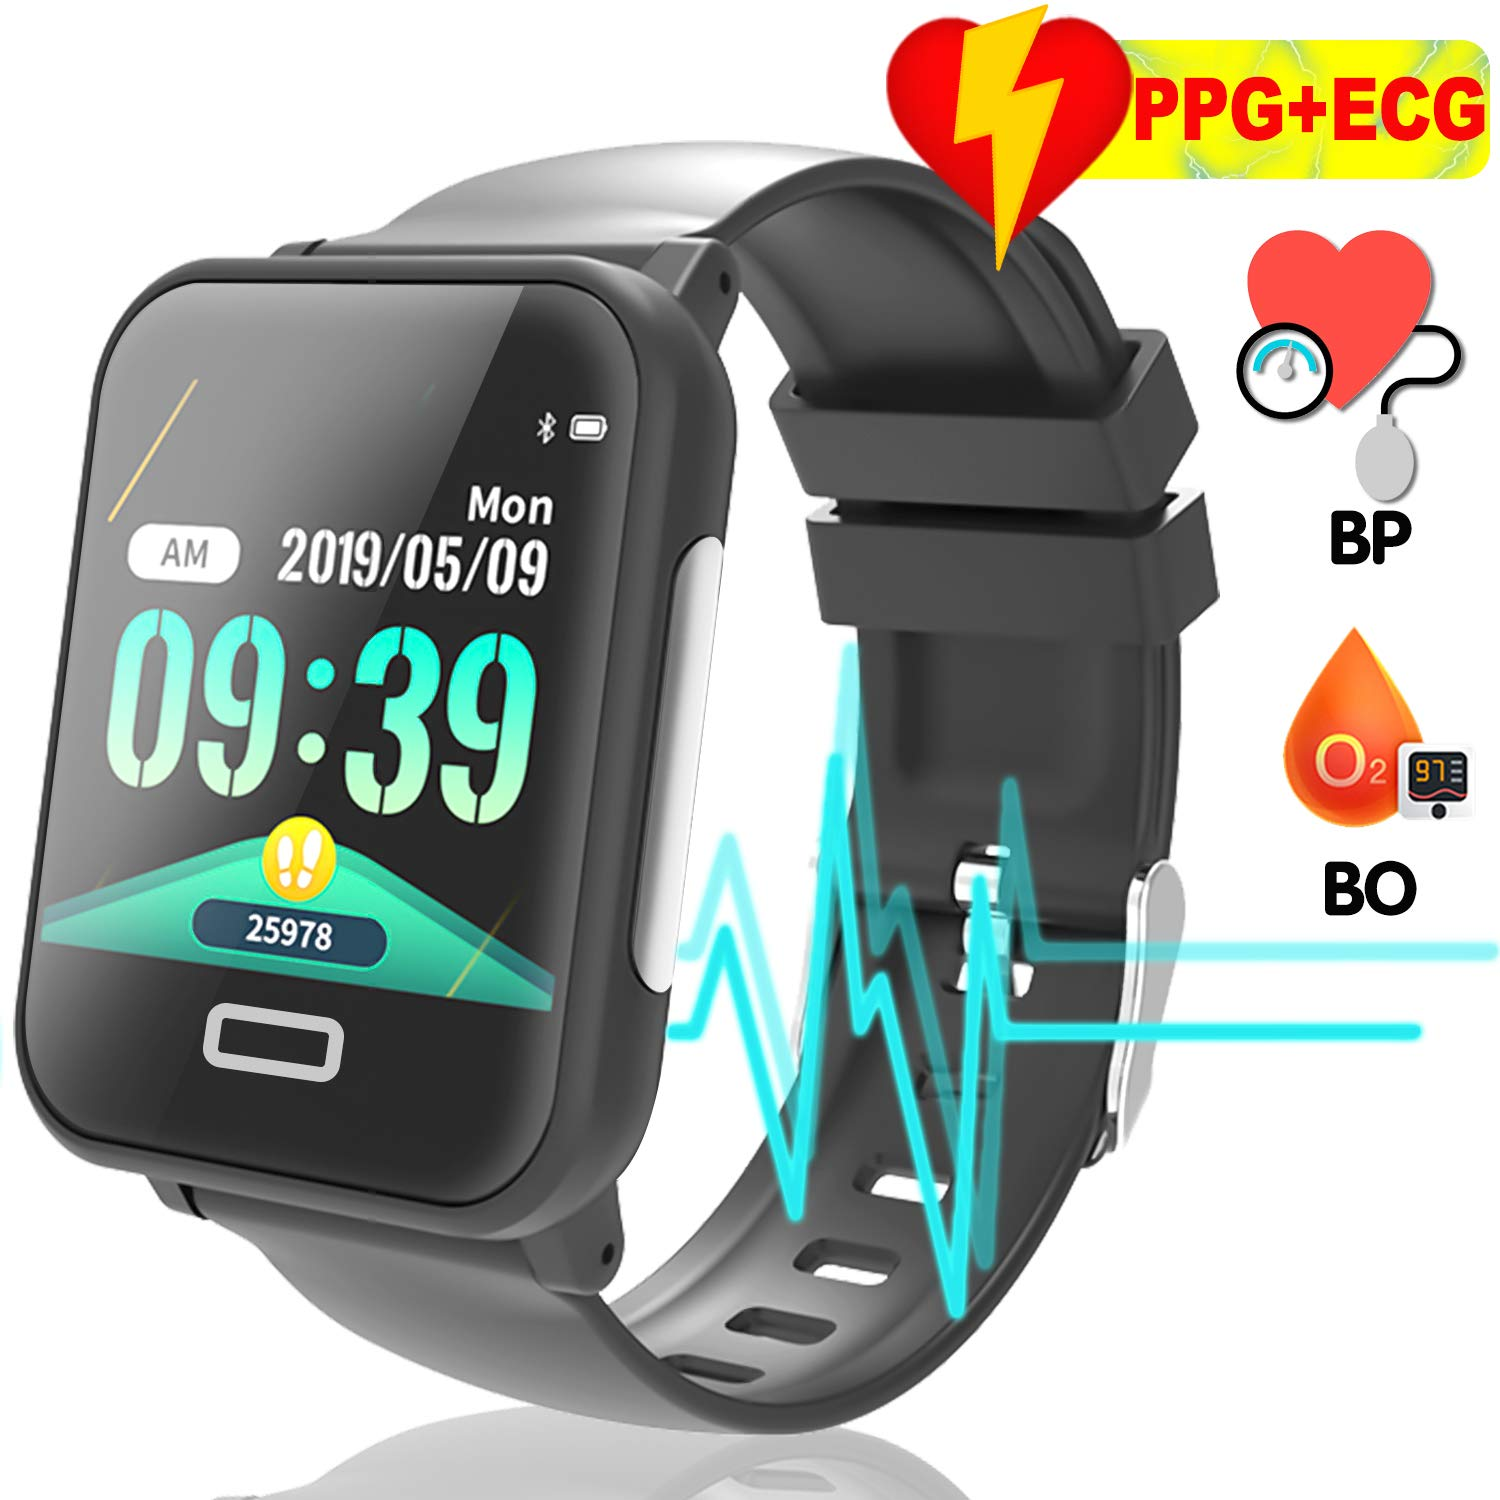 AMENON Upgraded ECG+PPG Fitness Tracker Detects Bradycardia and Tachycardia | Waterproof Smart Watch GPS Tracker for Men Women | Sports Watch Blood ...